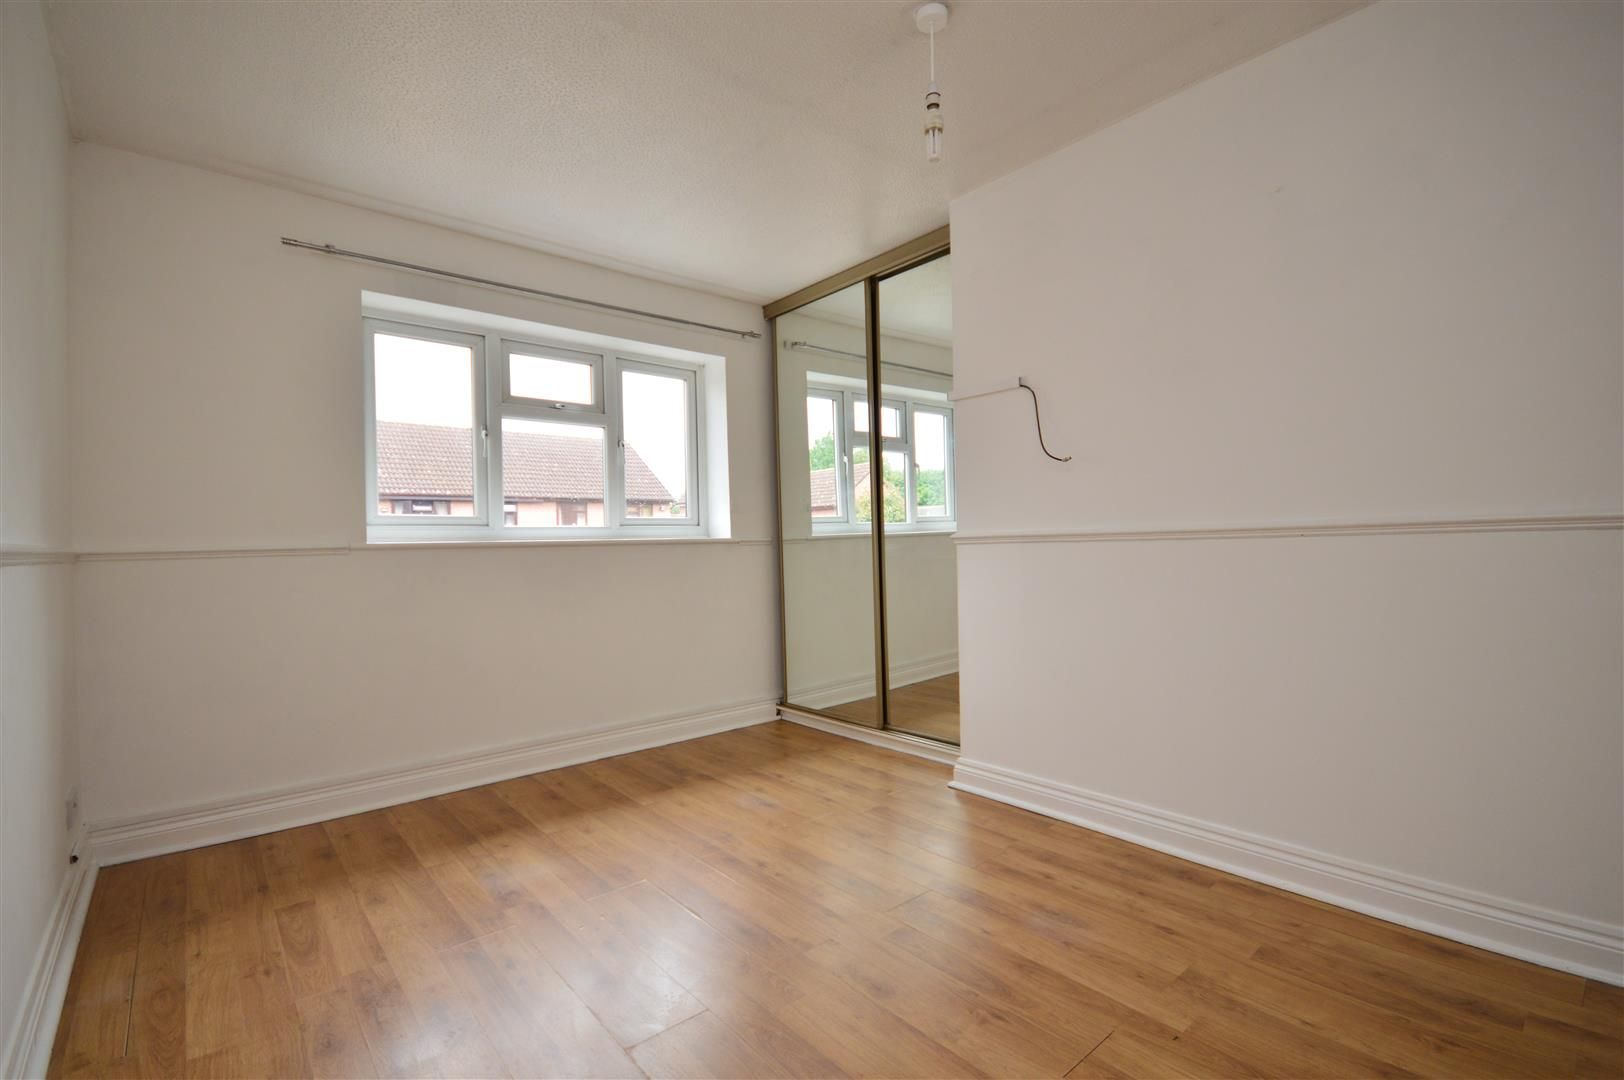 2 bed end-of-terrace for sale in Belmont  - Property Image 6